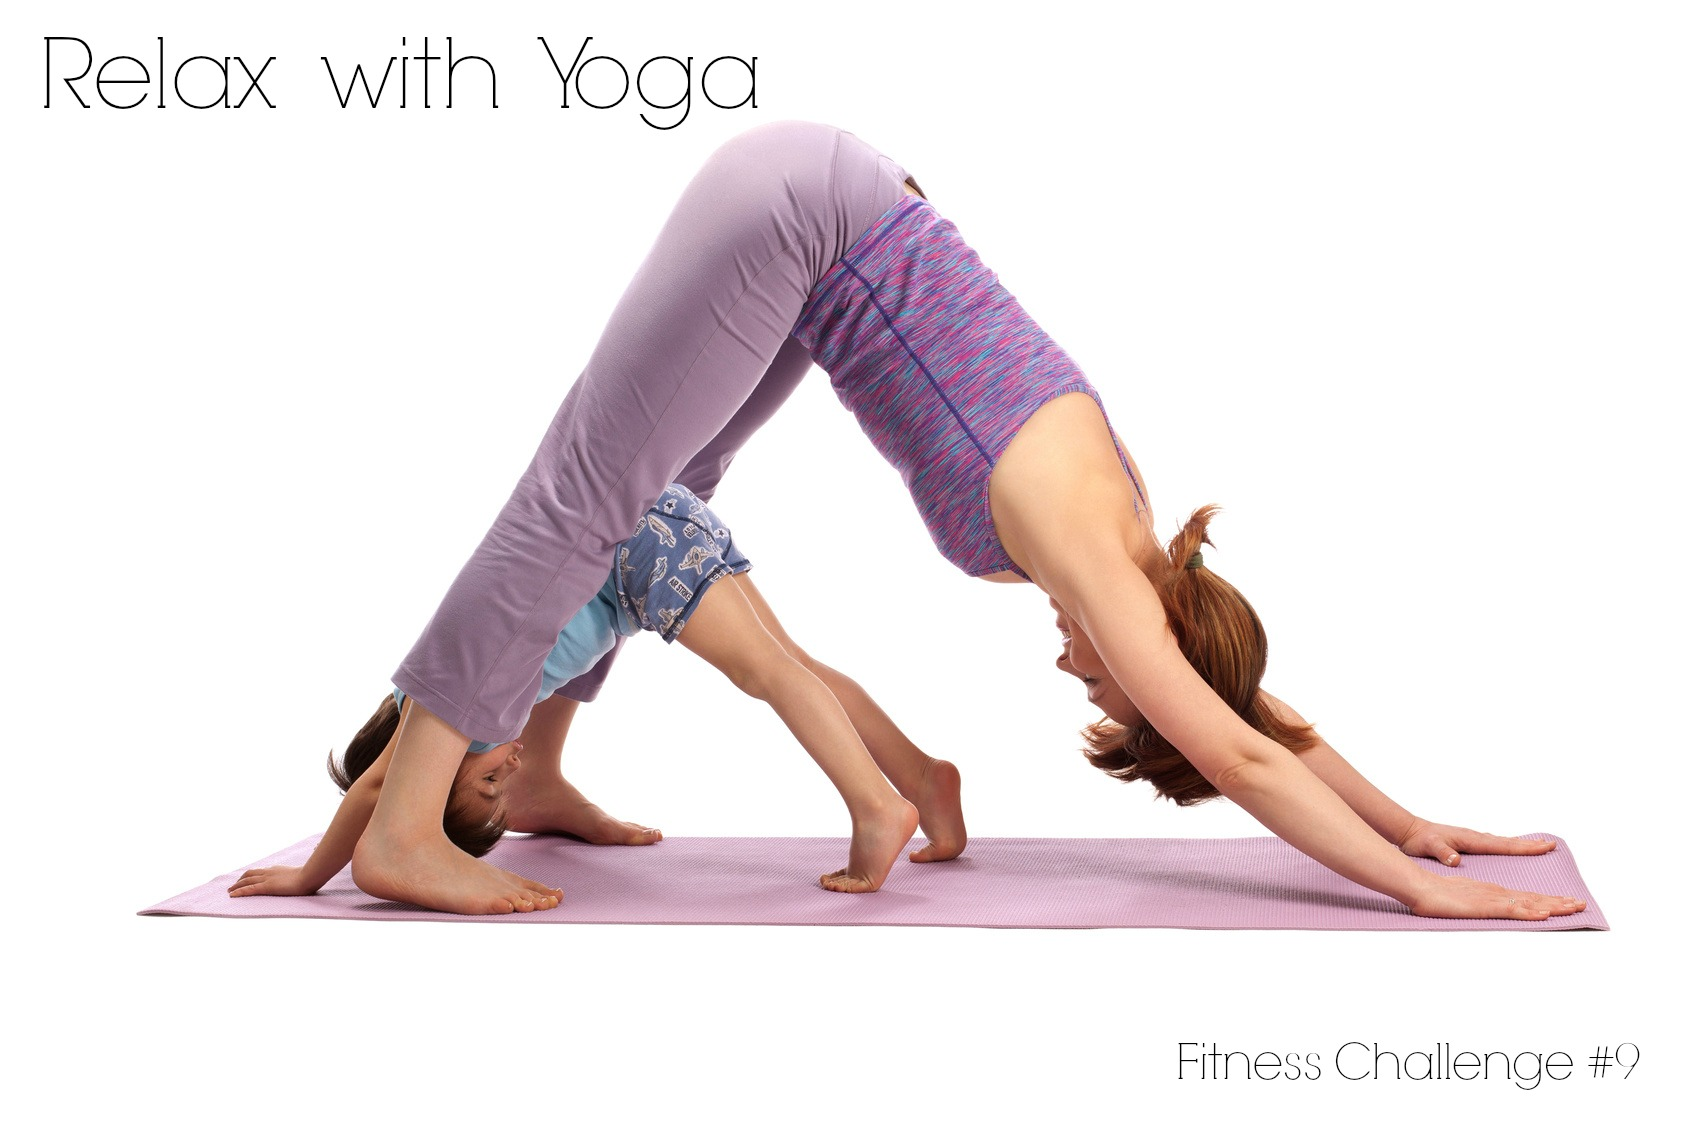 Fitness Challenge #9: Yoga Time | Diet Tools Blog